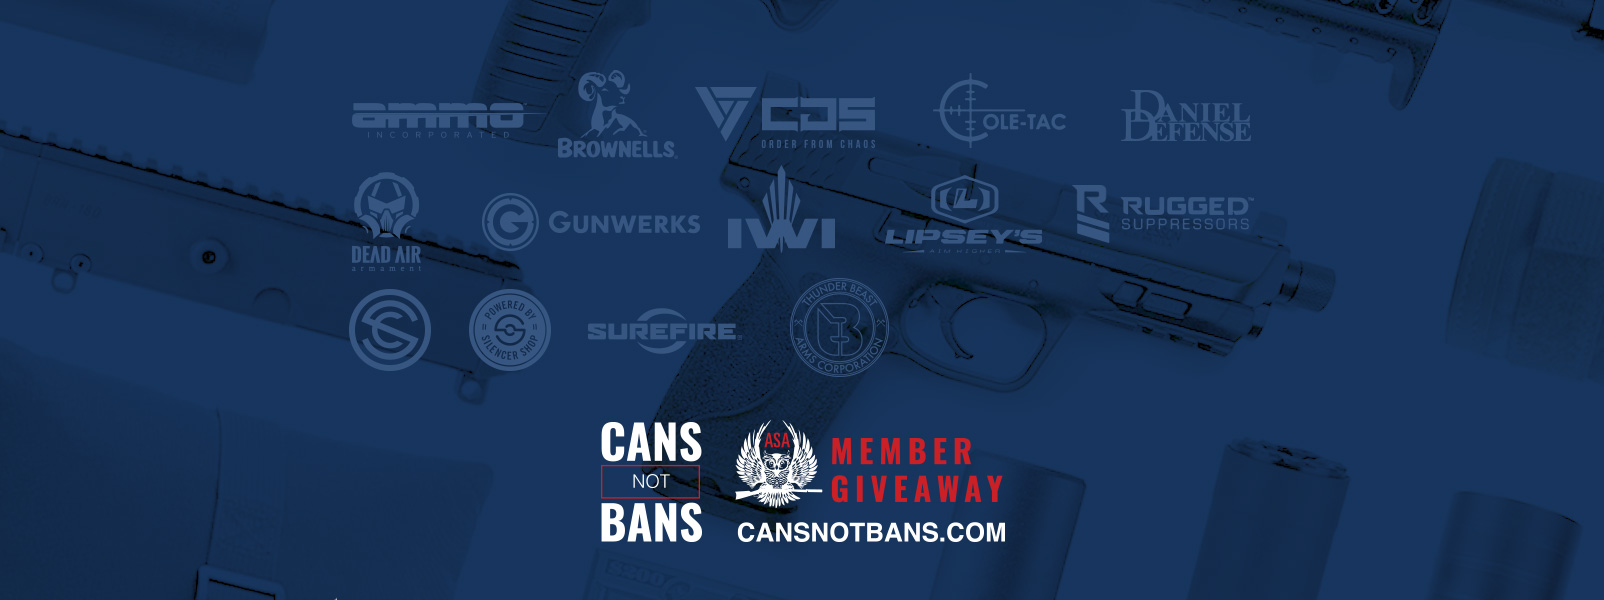 November Cans Not Bans Member Giveaway Winners Announced